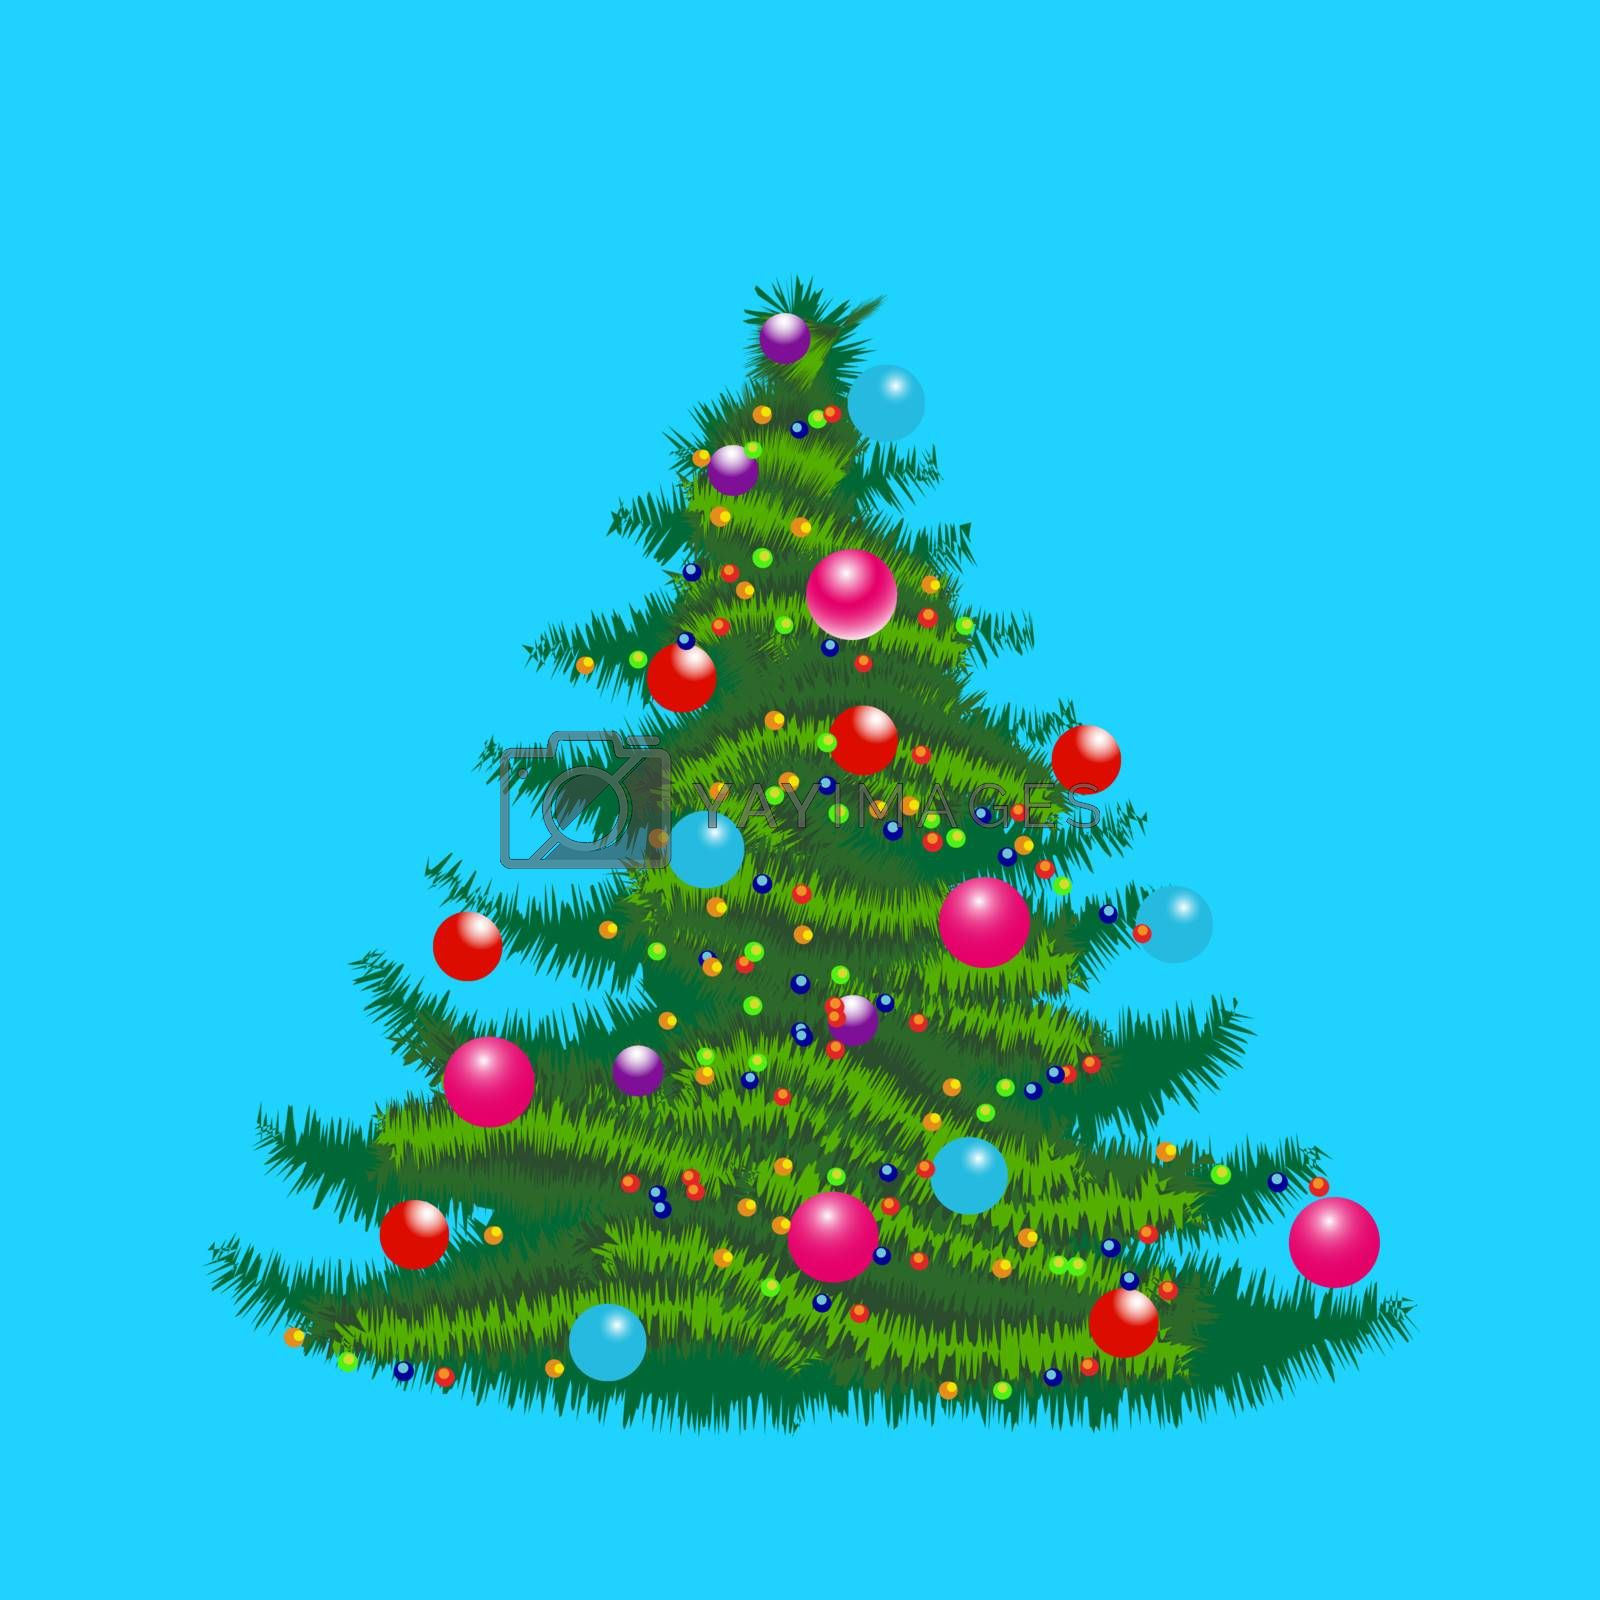 Vector illustration of christmas tree with ornaments